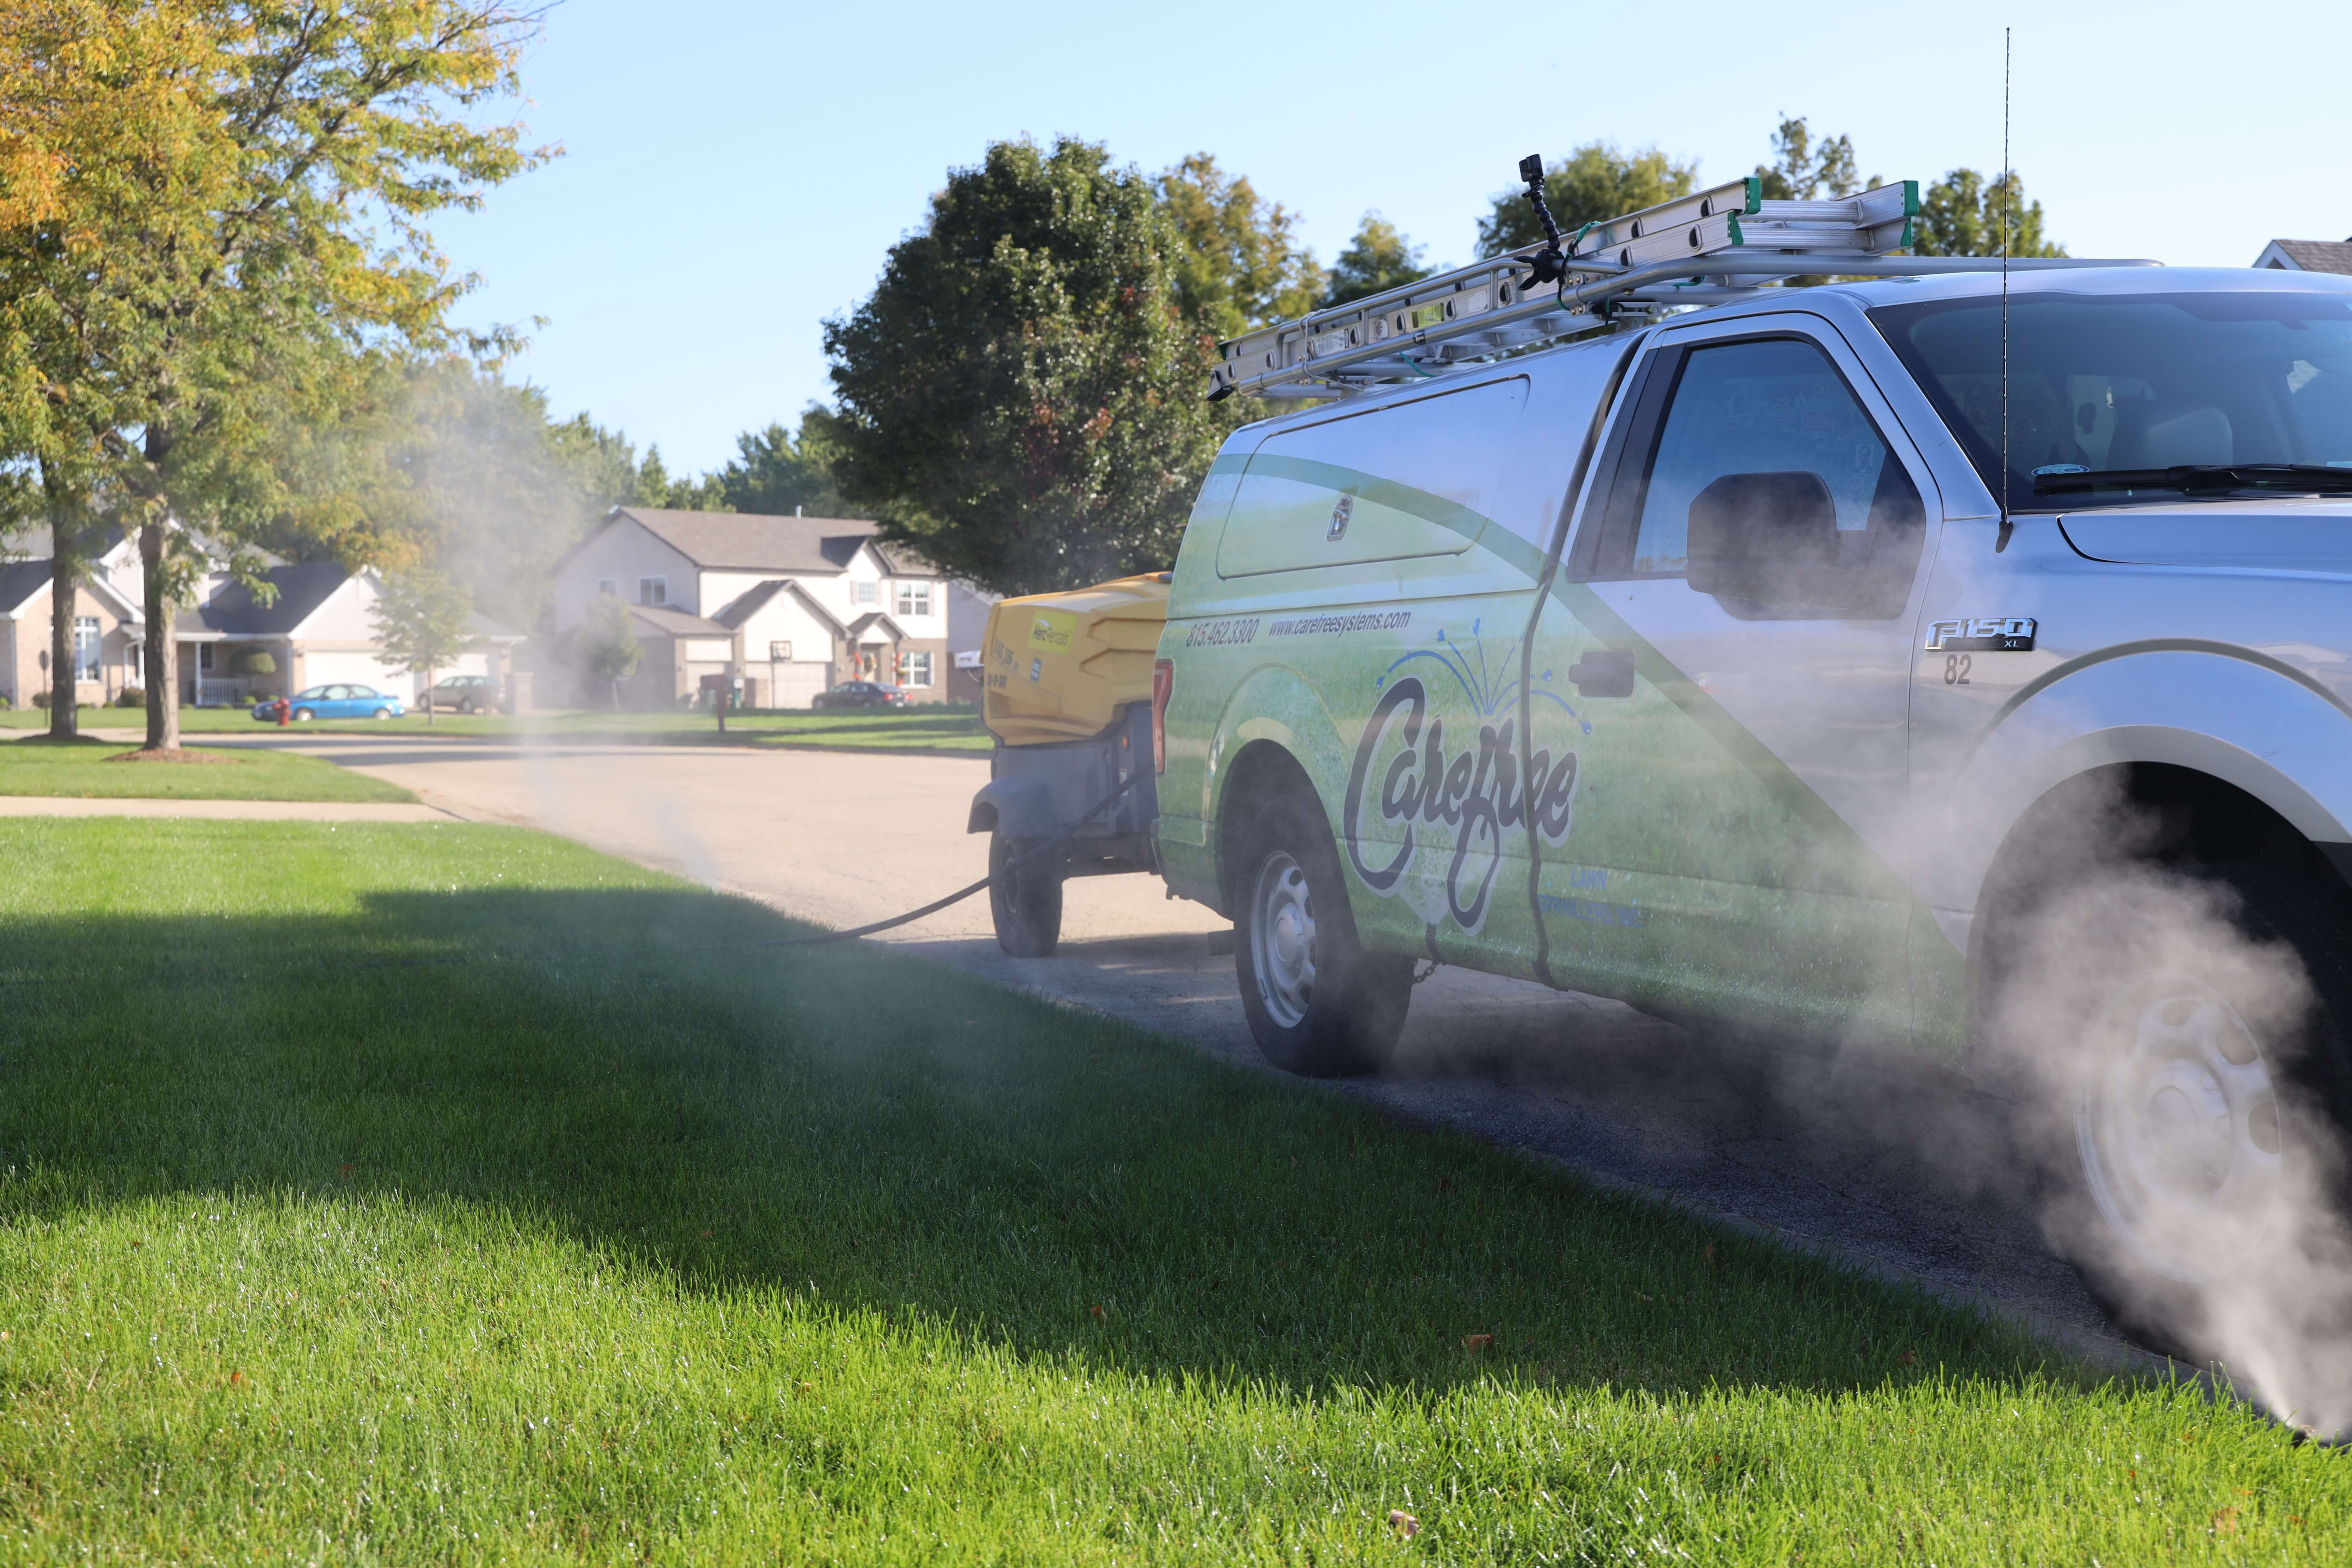 Chicagoland RPZ Testing - Carefree Lawn Sprinklers Inc.